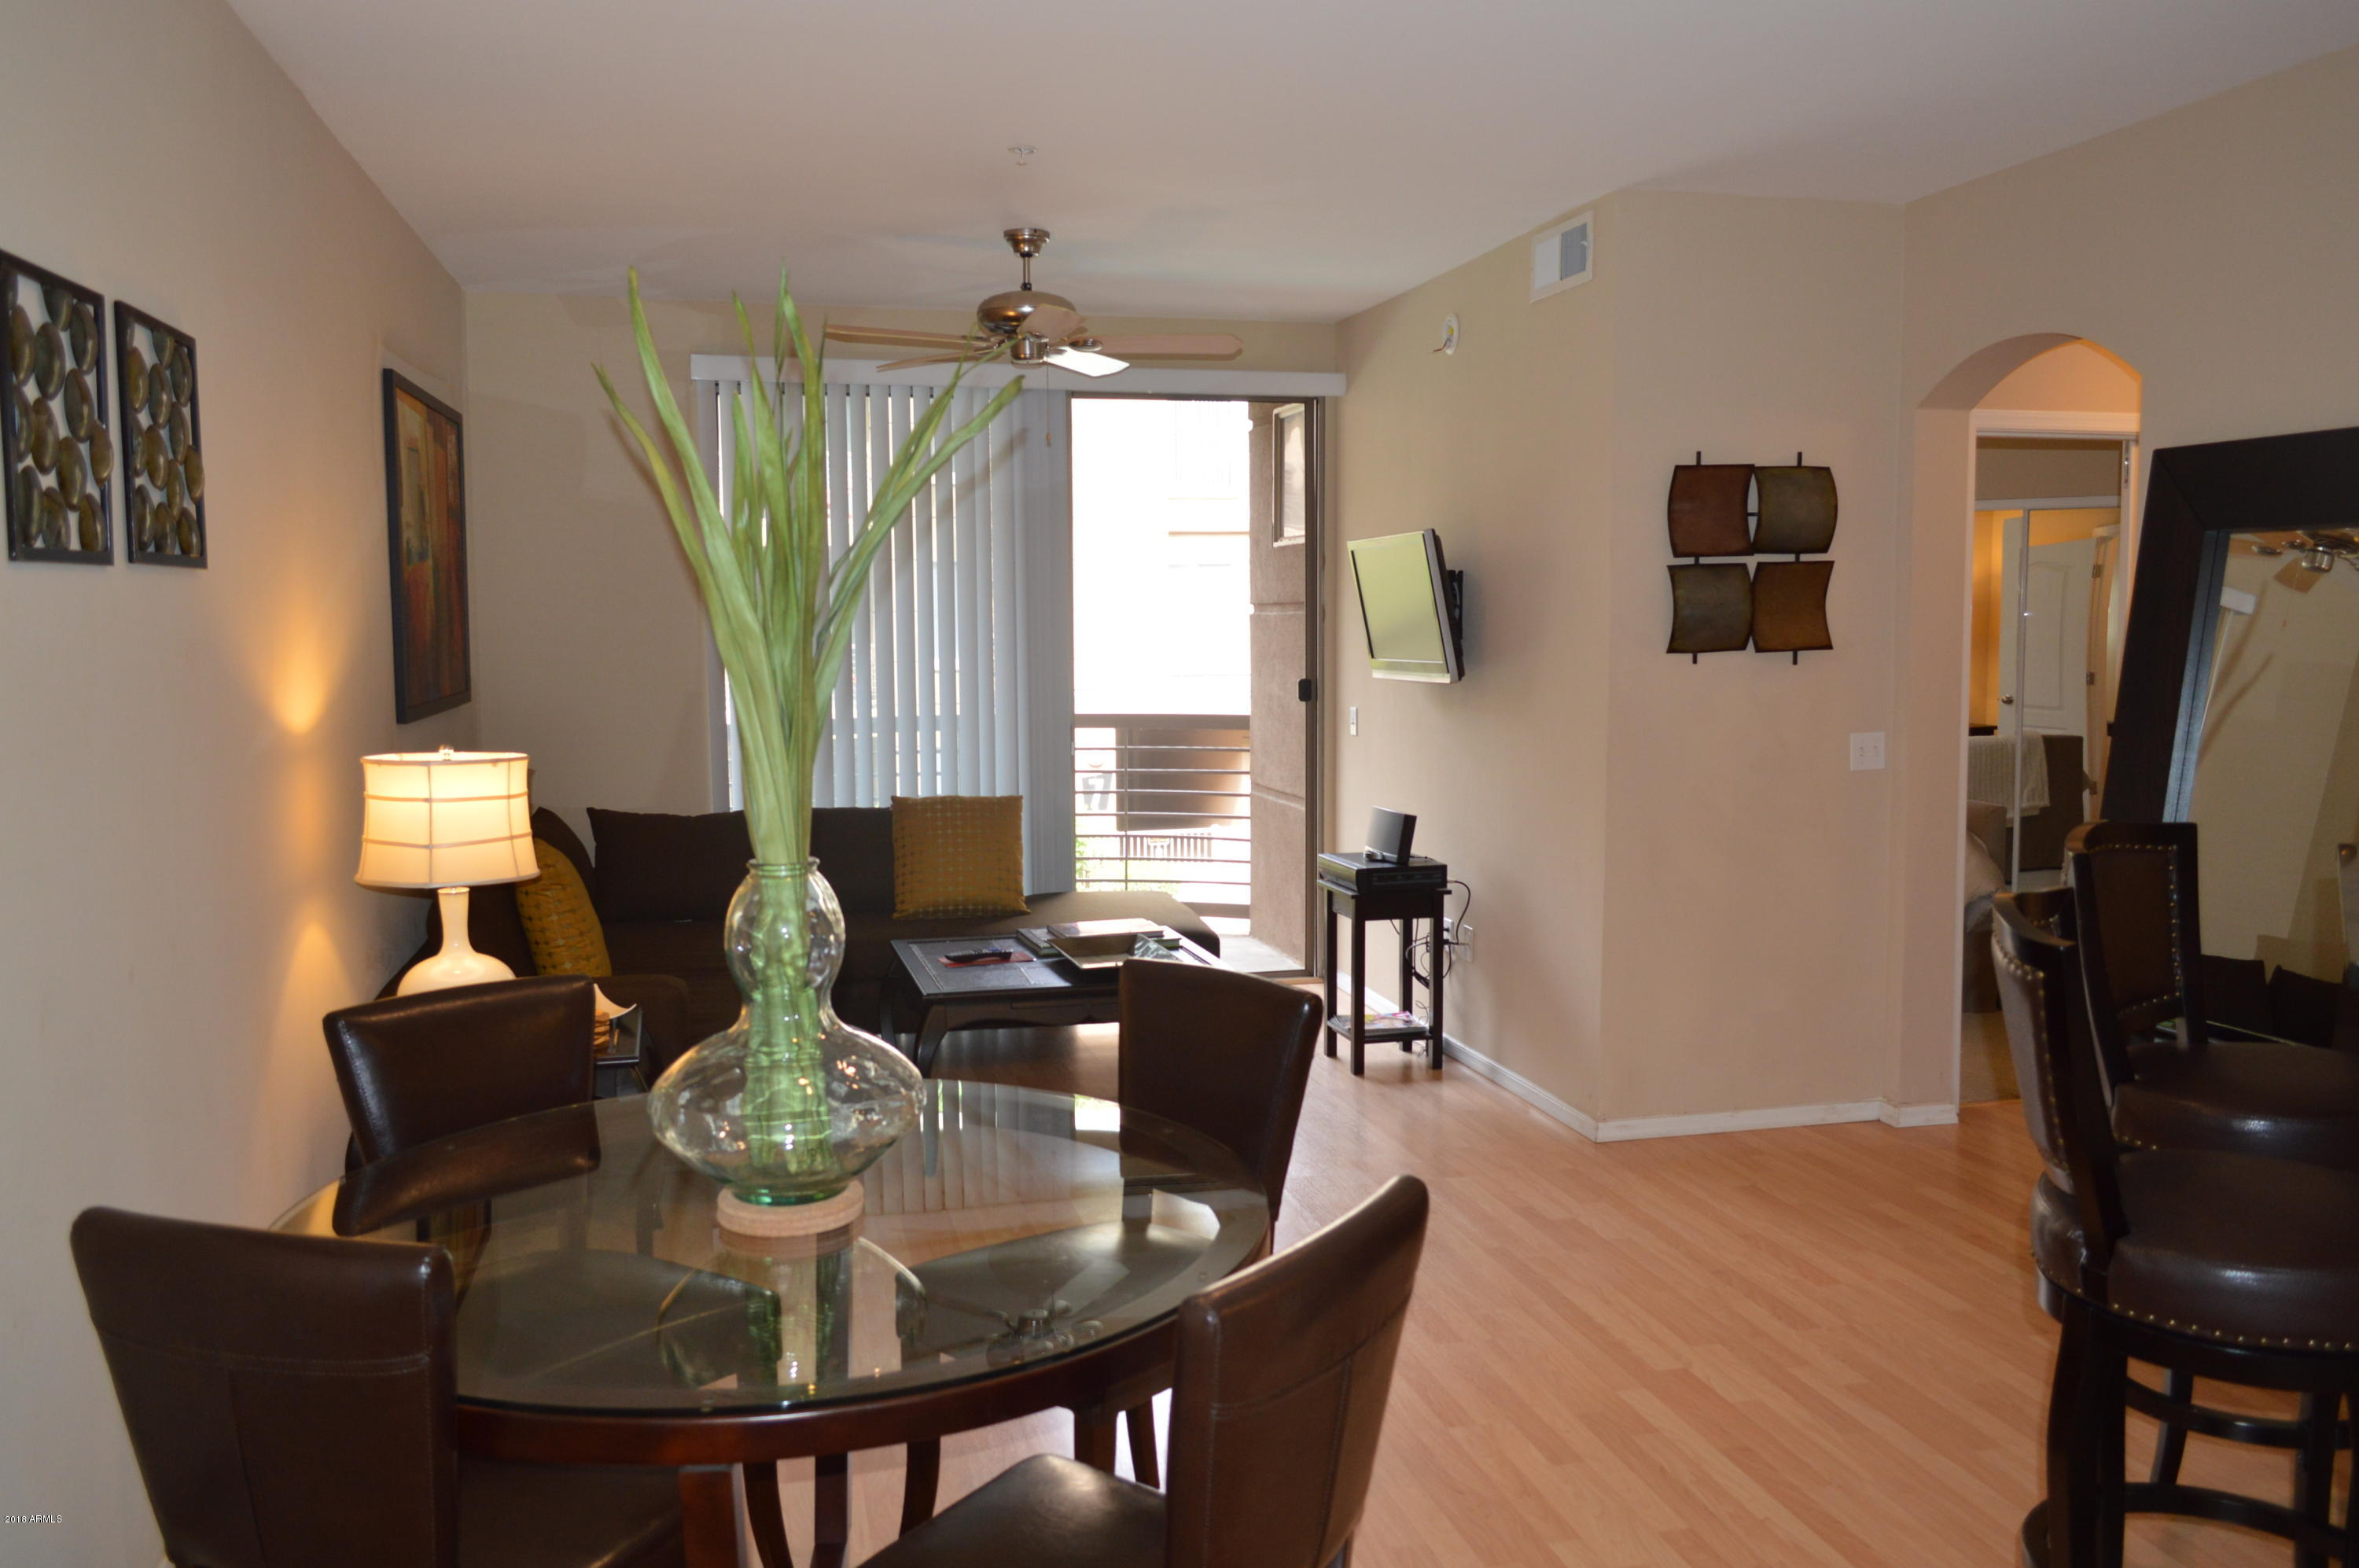 Photo for 1701 E Colter Street, Unit 267, Phoenix, AZ 85016 (MLS # 5881907)